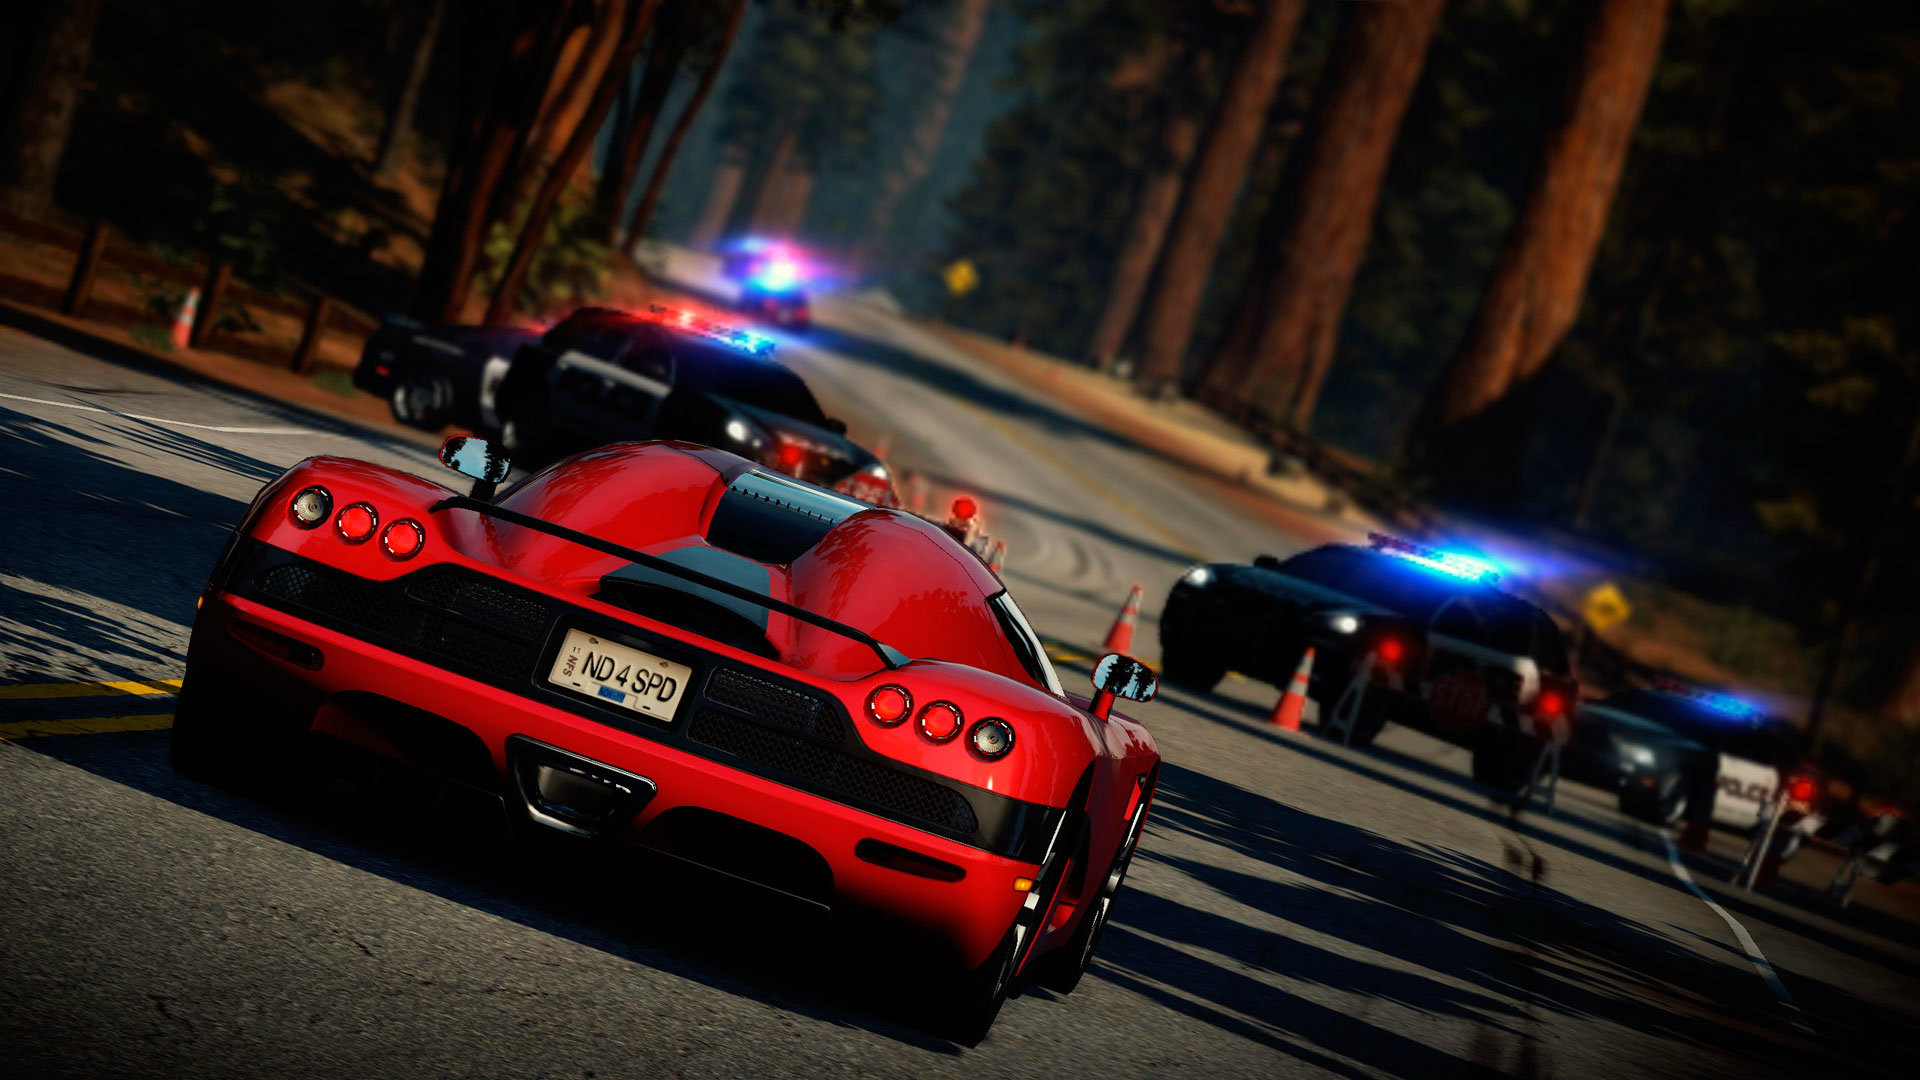 1920x1080 Full HD 1080p Racing Games Wallpaper - Games Wallpapers